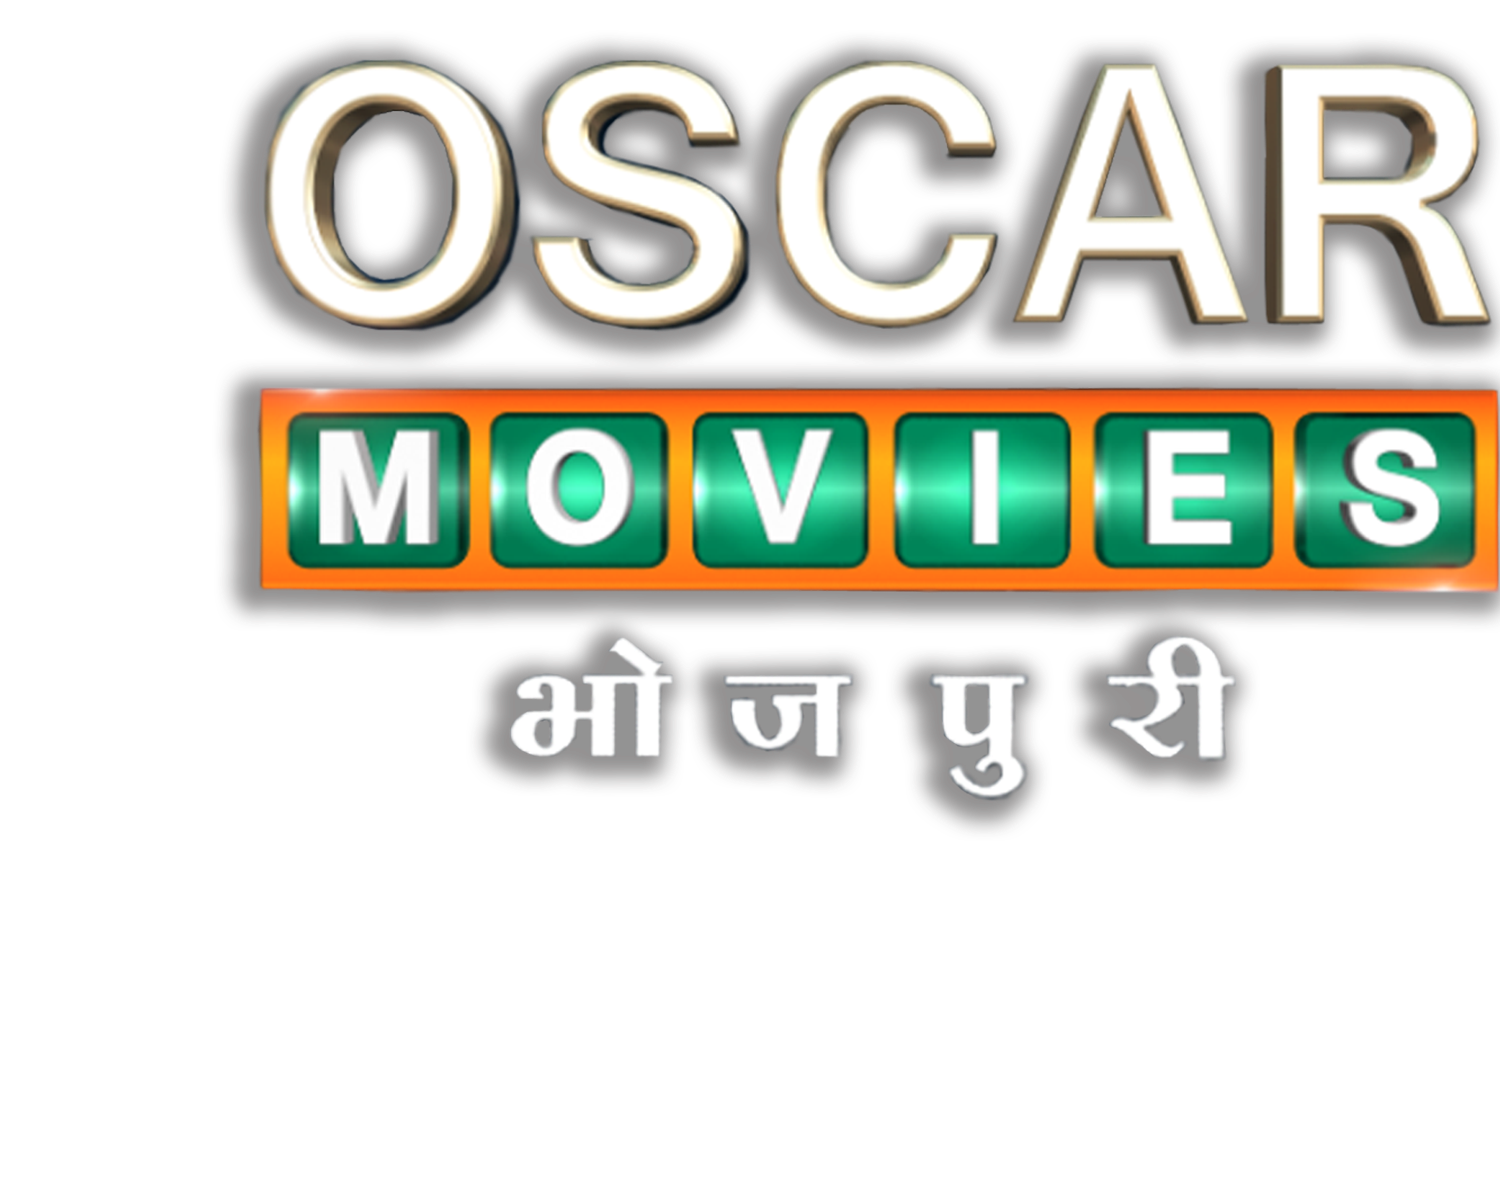 Oscar Movie Bhojpuri Channel Added on Intelsat 20 @ 68 5